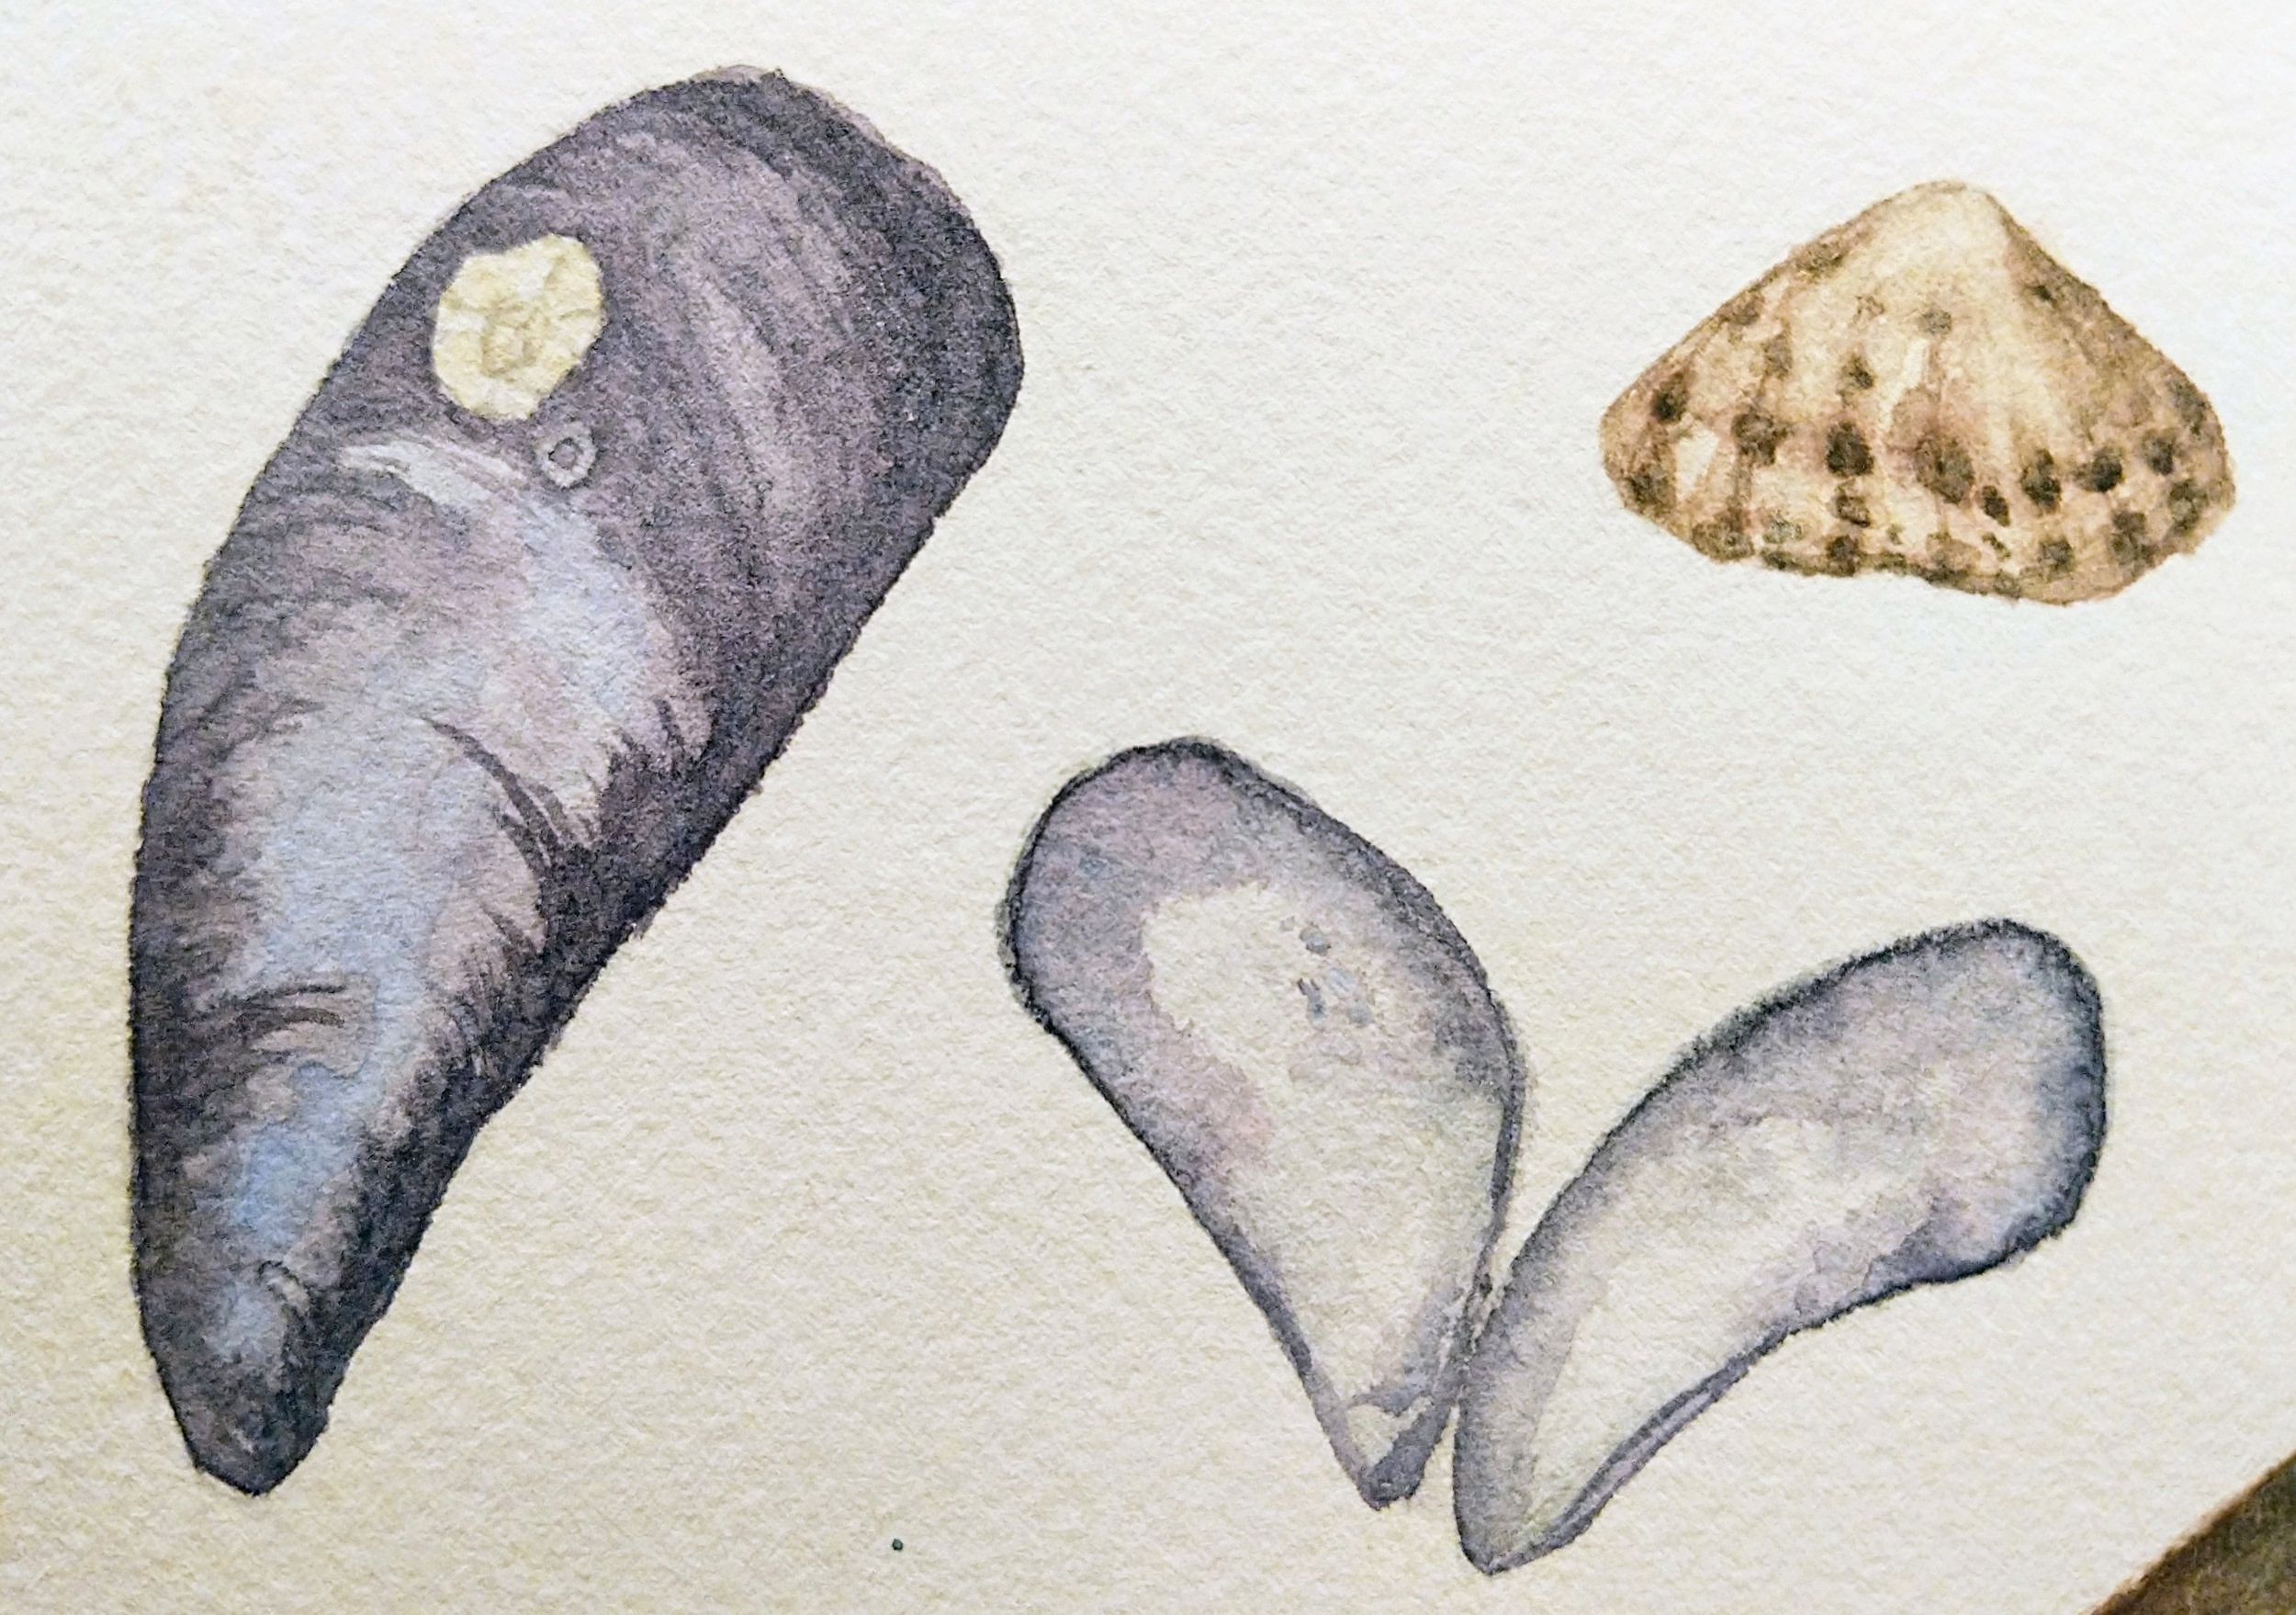 Watercolor paint sketch - Mussels and limpet.